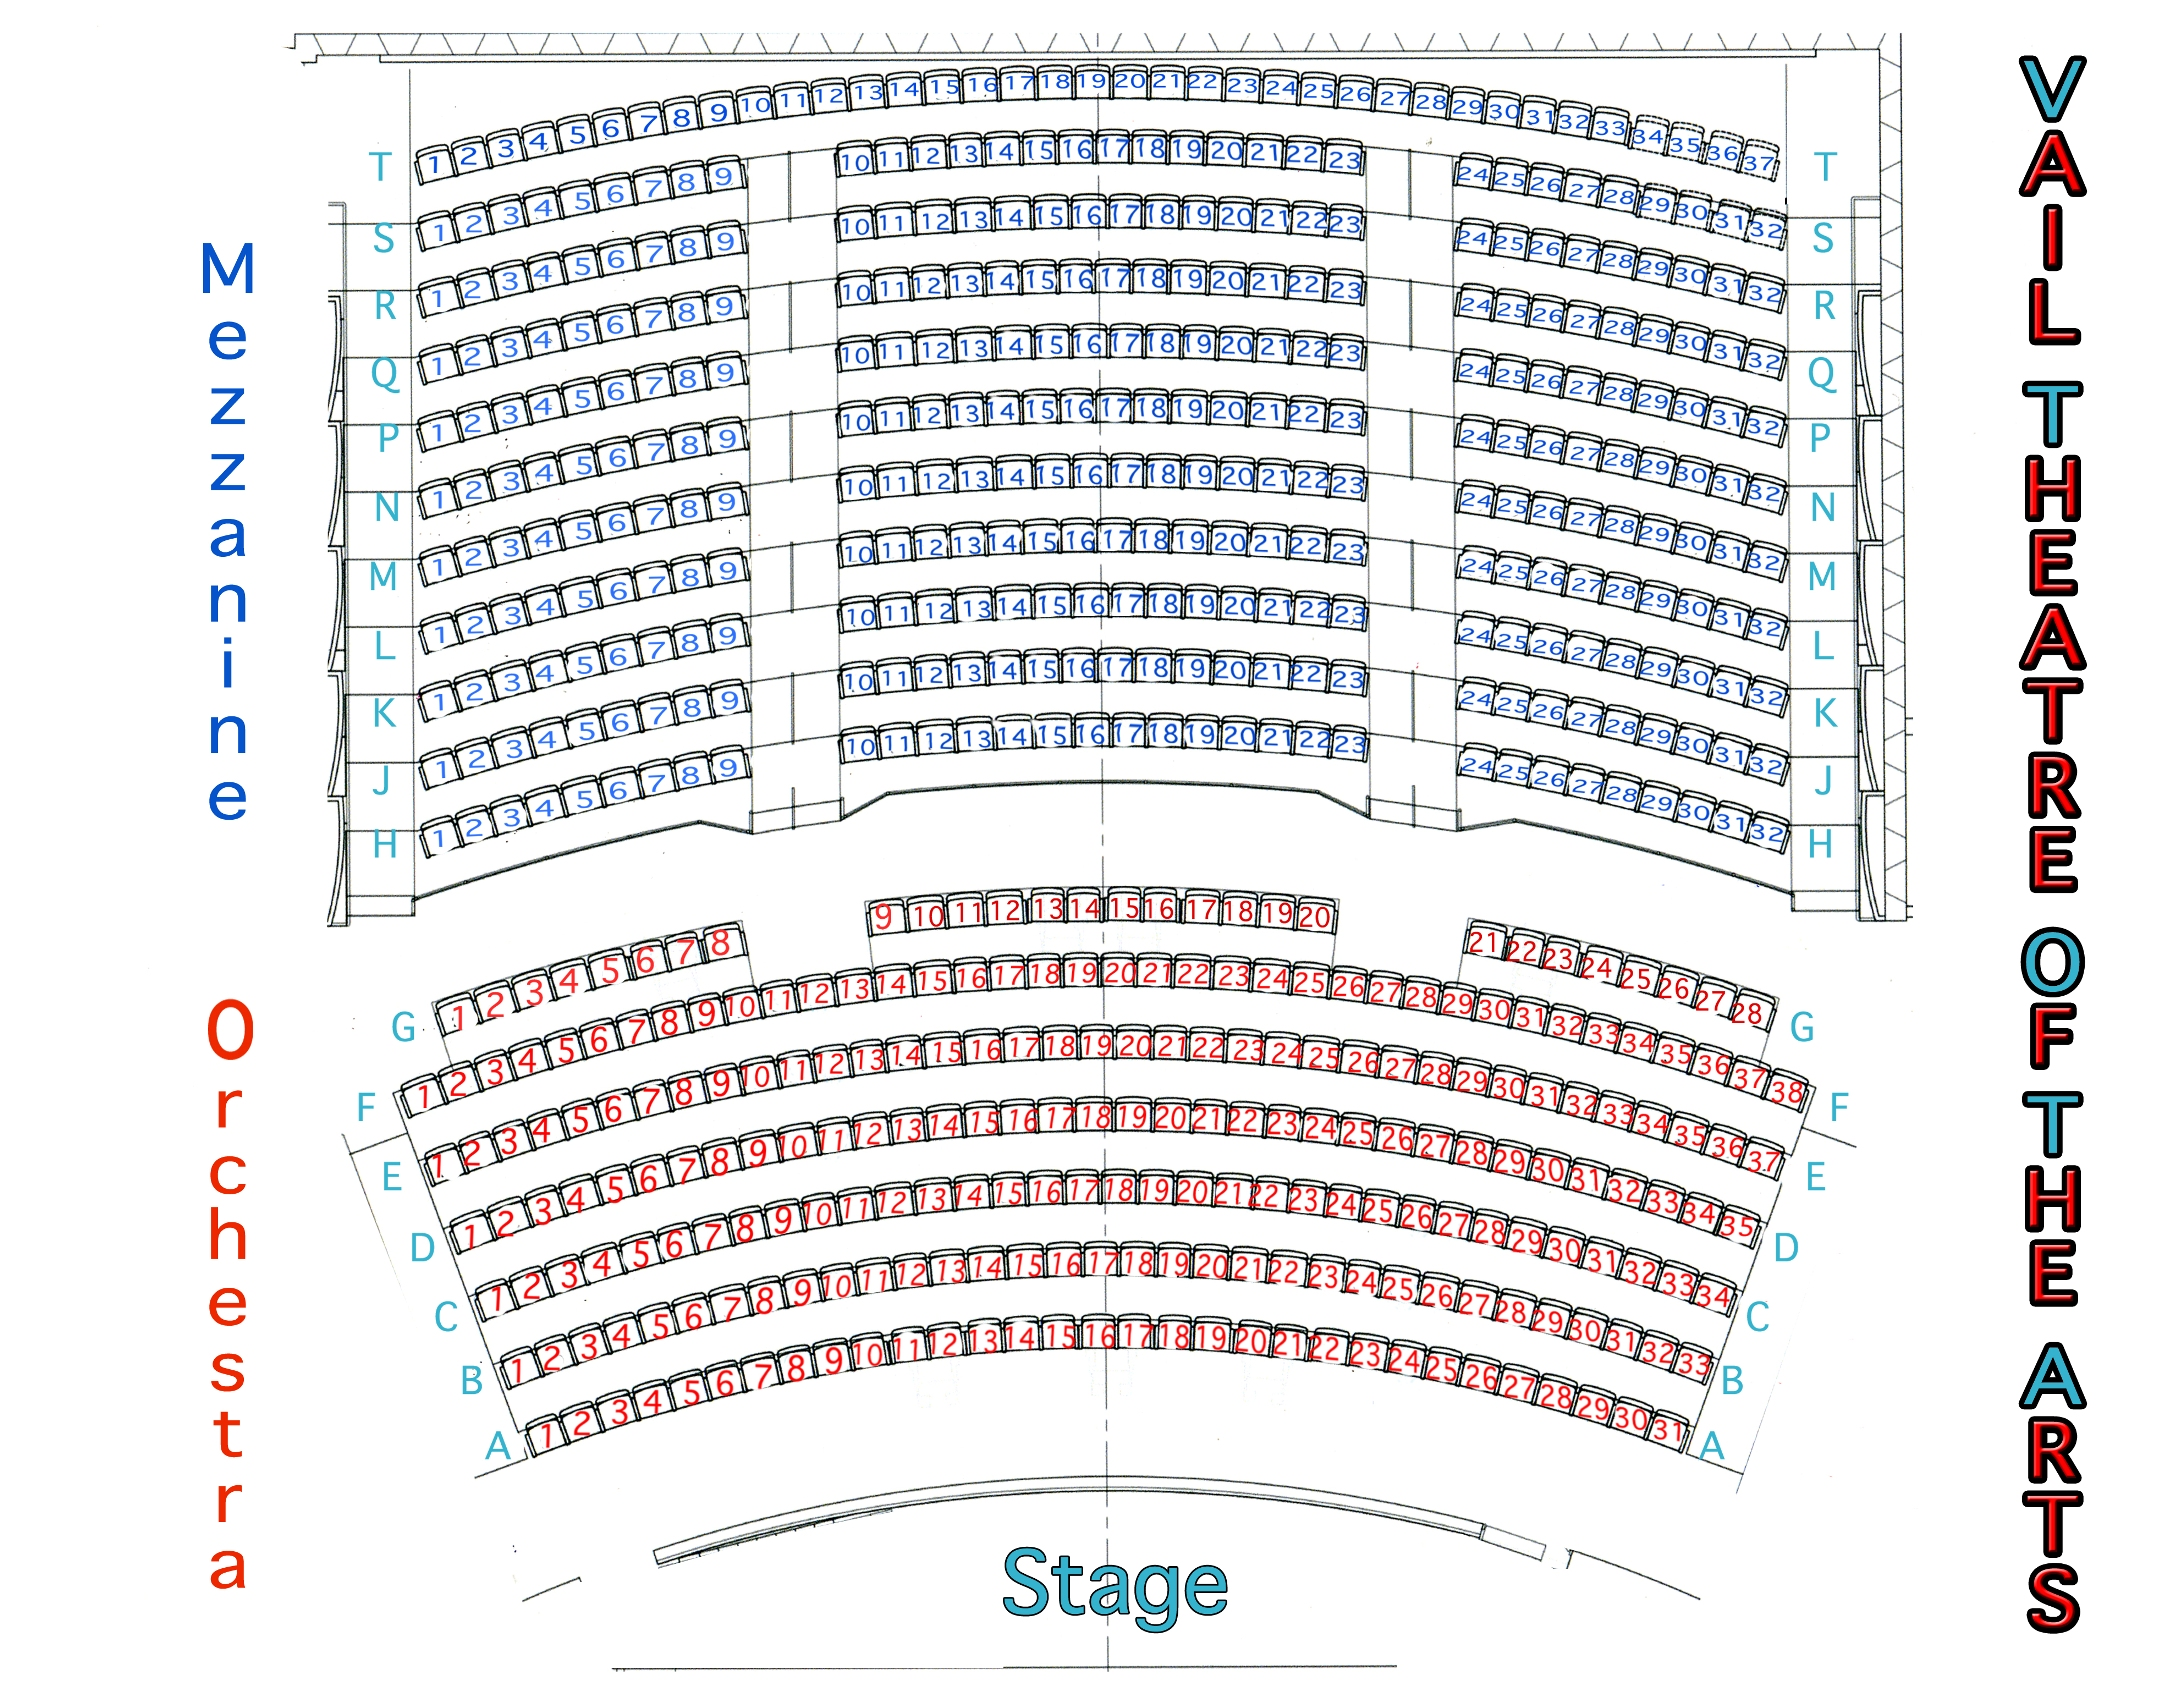 Seating Chart Vail Theatre of the Arts – Seating Chart